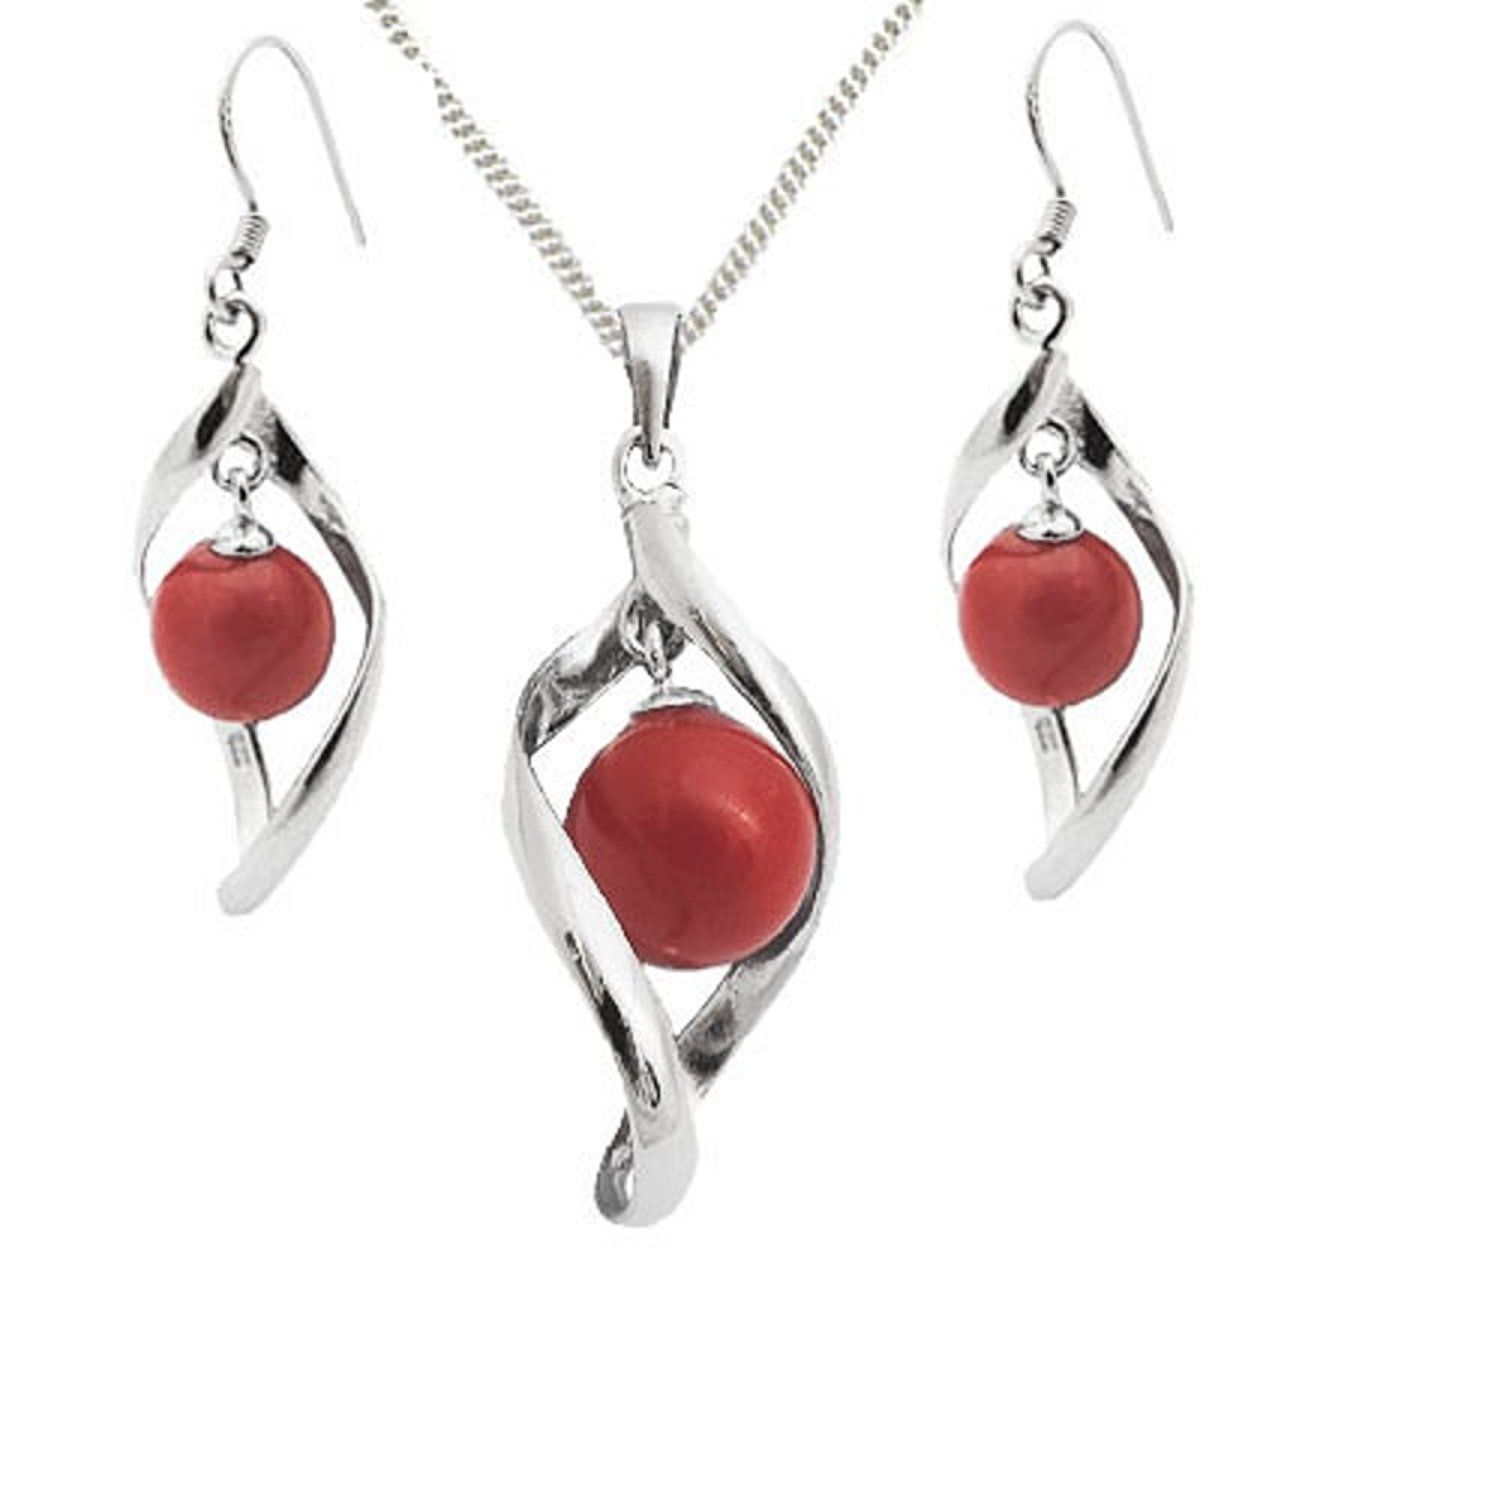 925 Sterling Silver Coral Round Twist Drop GIFT SET Pendant, Earrings and Chain - Organic Jewellery - May Birthstone